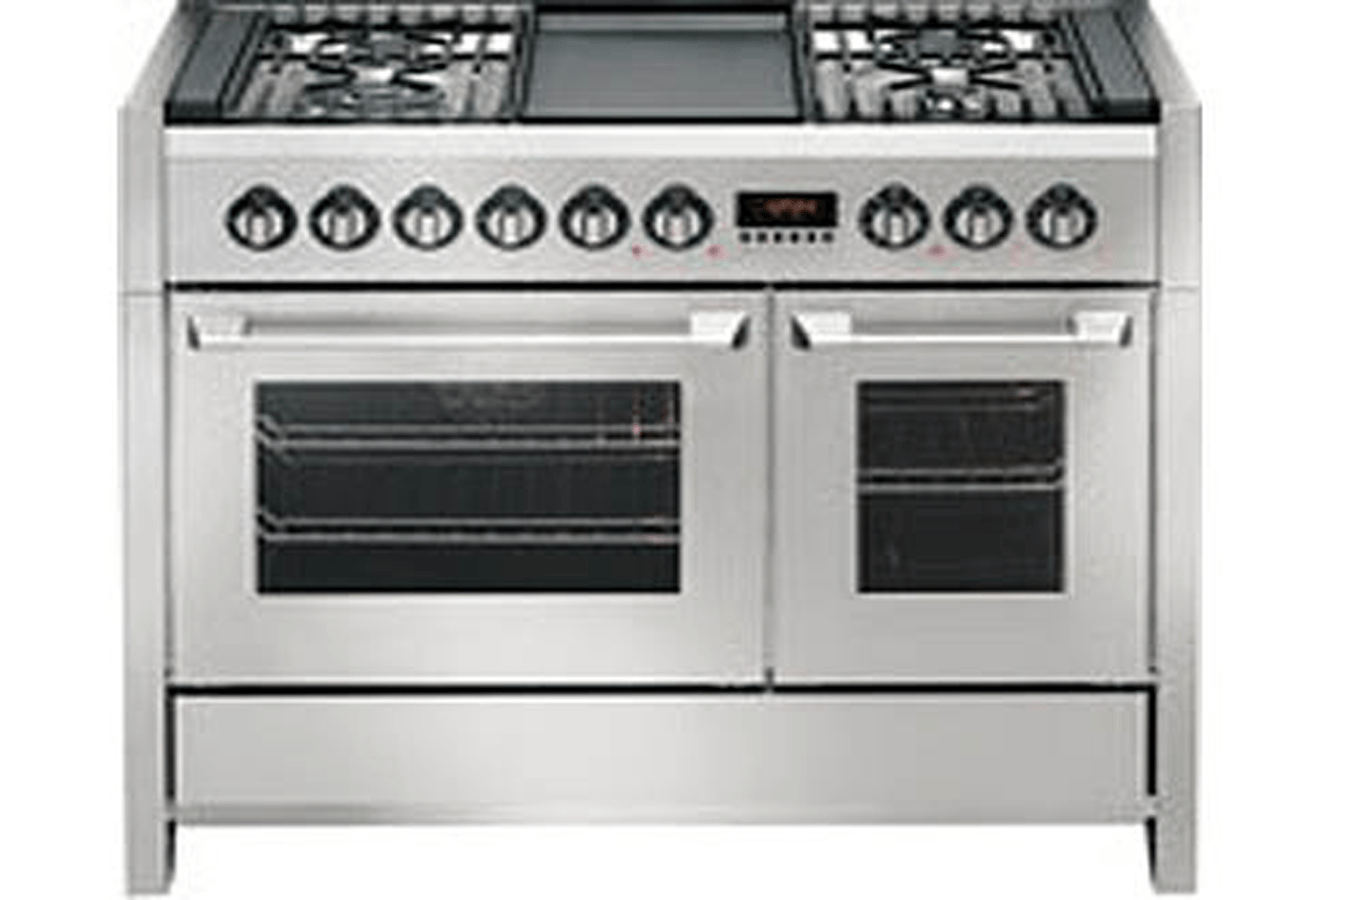 Cuisson Par Convection Piano De Cuisson De Dietrich Dcm6101xe 2438909 Darty